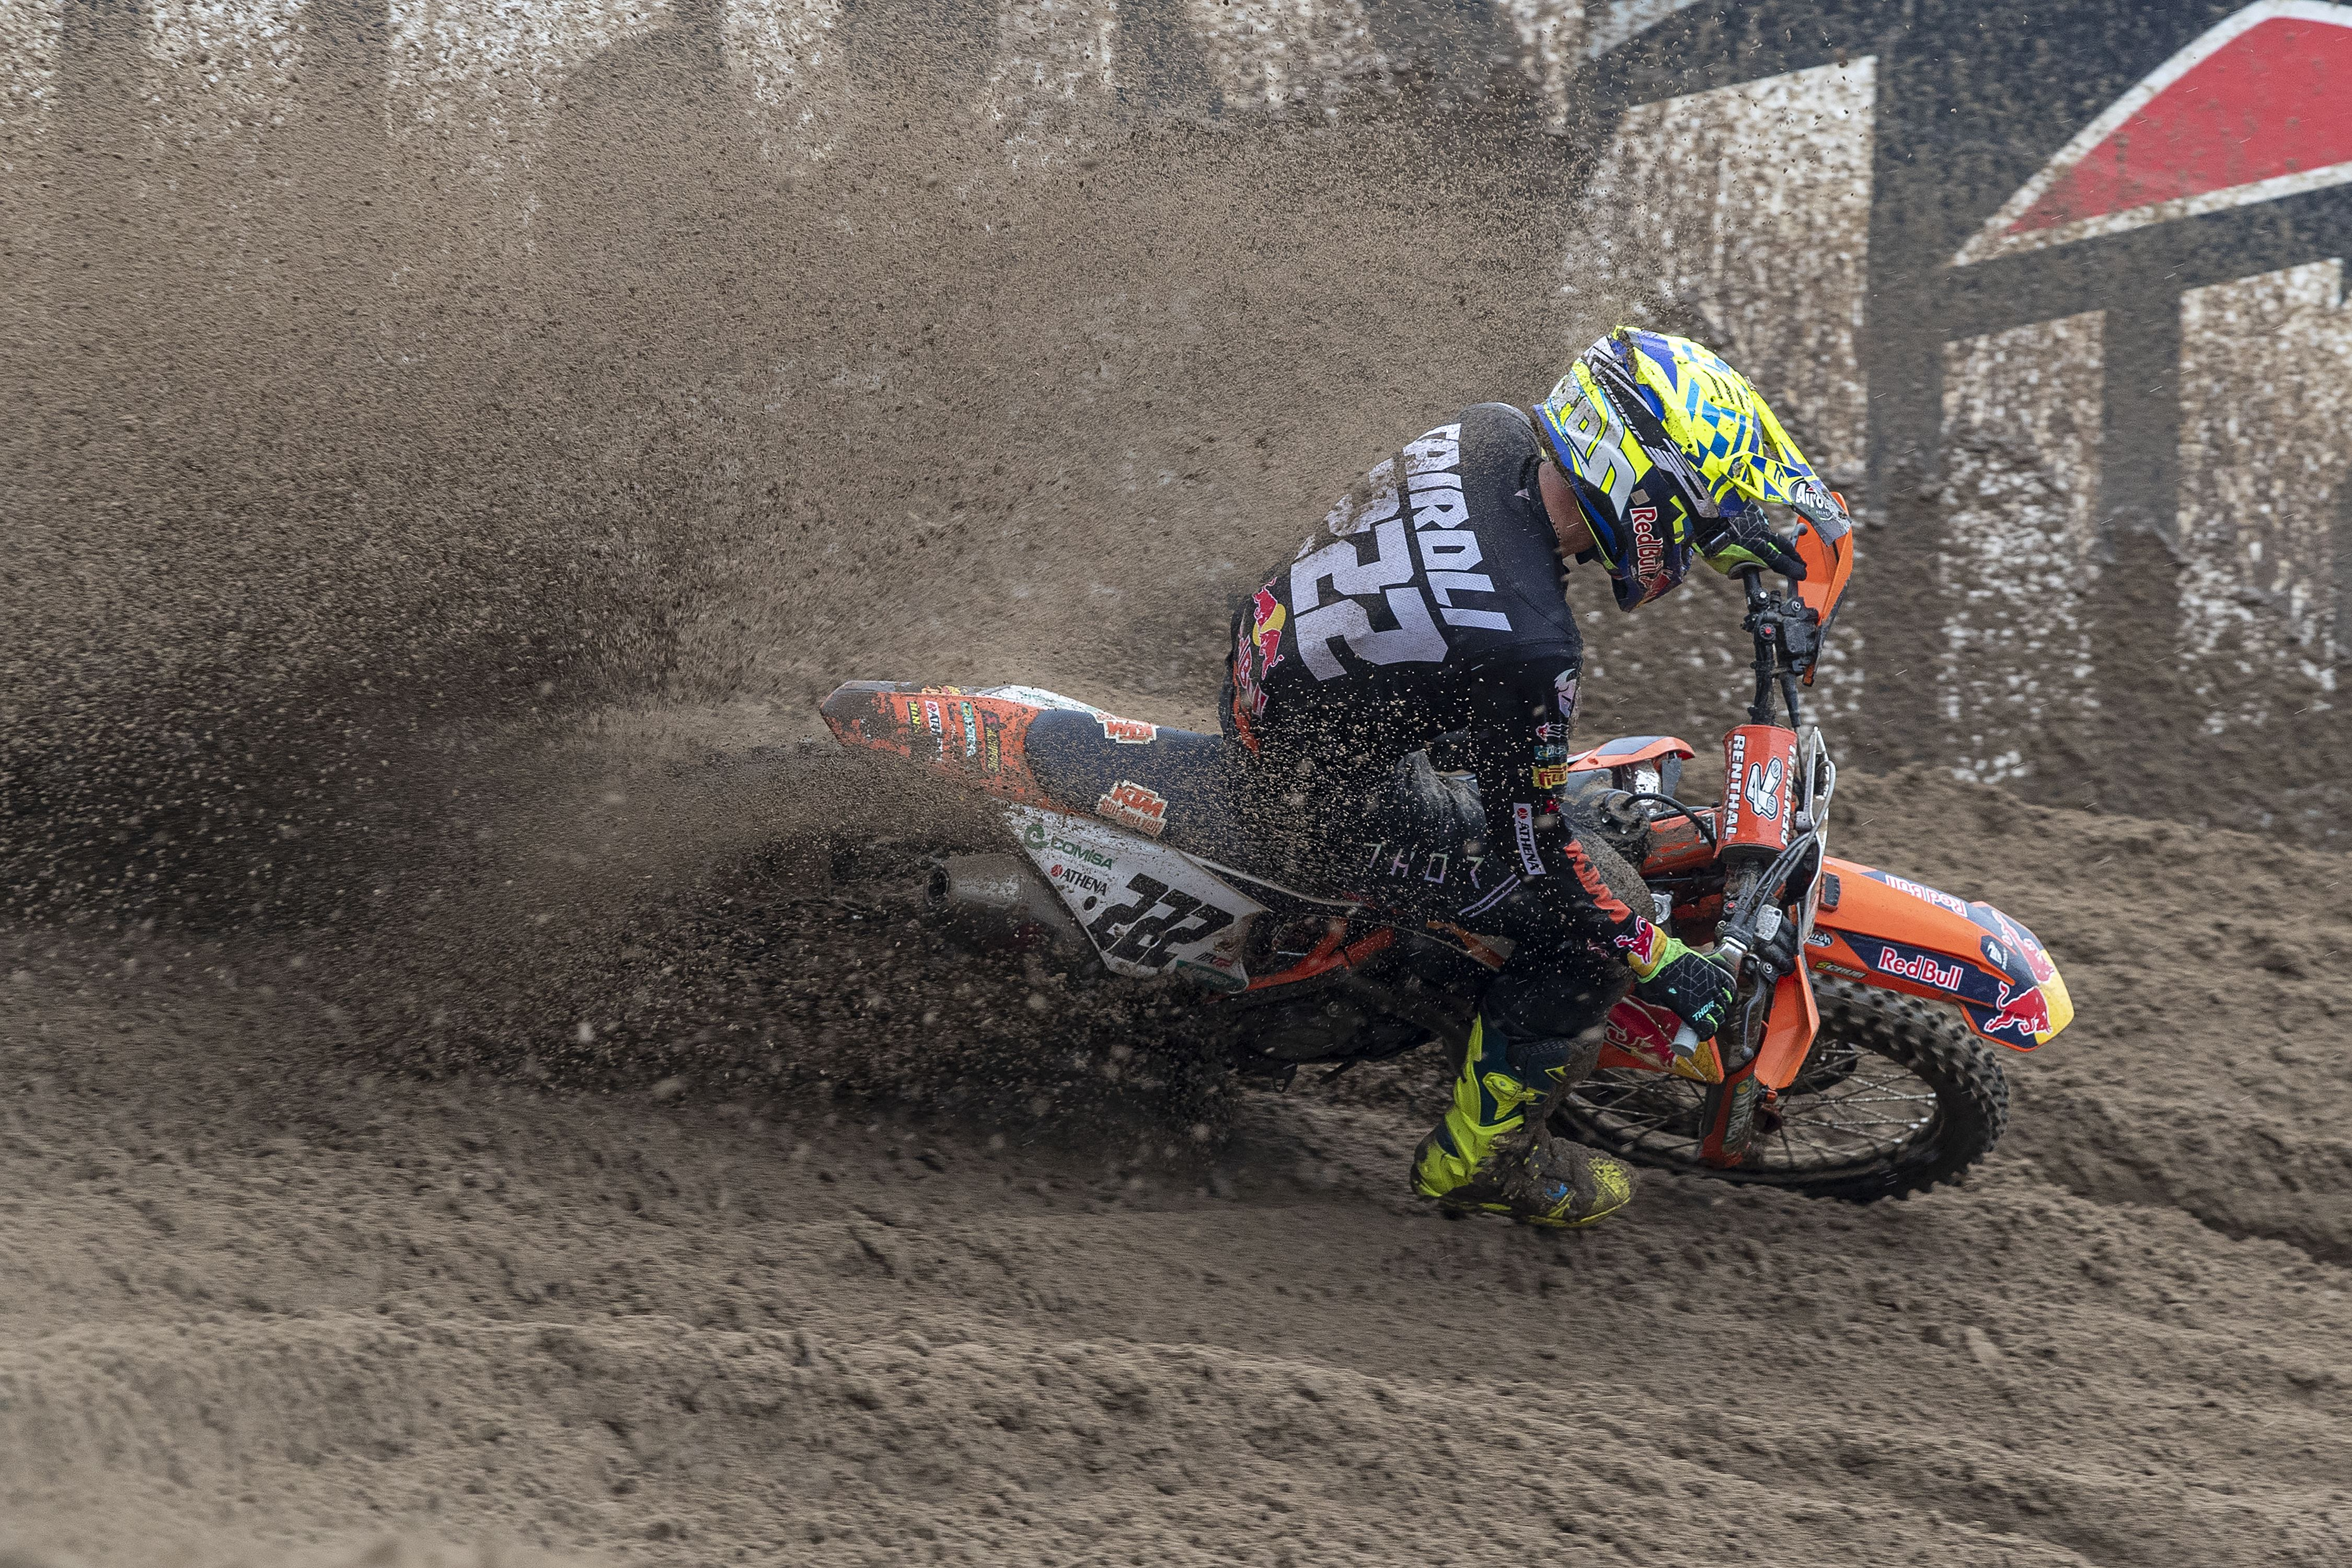 Lommel MXGP: Red Bull KTM's Tony Cairoli claims fifth overall